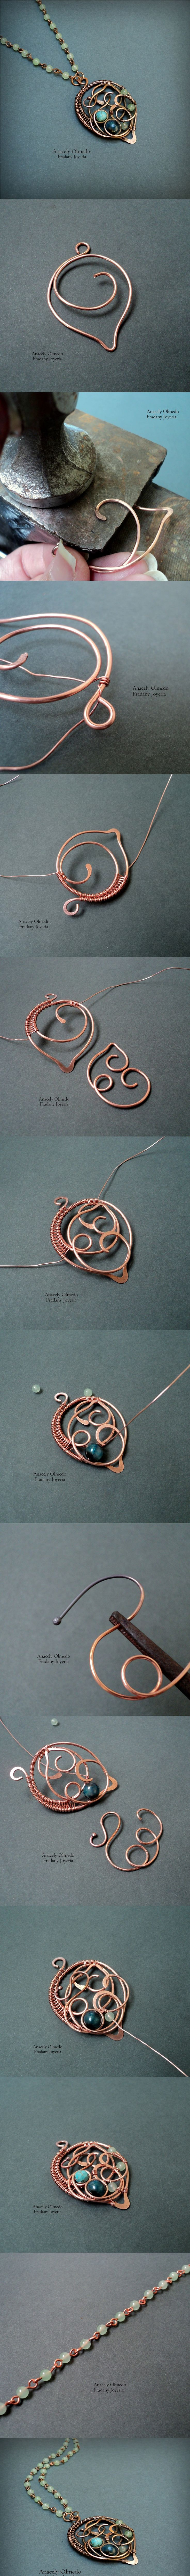 Materials and Tools: - 18 gauge copper wire (base part) - 20 gauge copper wire (For the part of the image # 8) - 22 gauge copper wire (For Chain). - Natural Stones. - Sandpaper of different calibers. - Lima for jewelry. - Anvil and Hammer. - Ammonia solution. - Polishing paste.